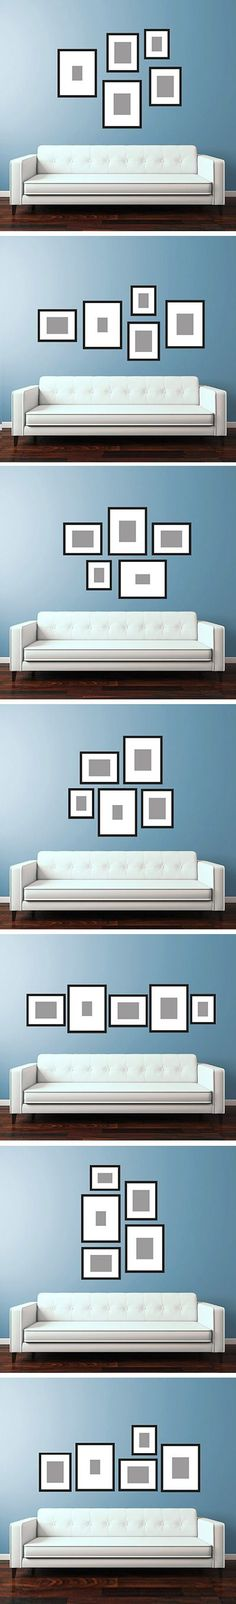 picture wall layouts to hang above your sofa